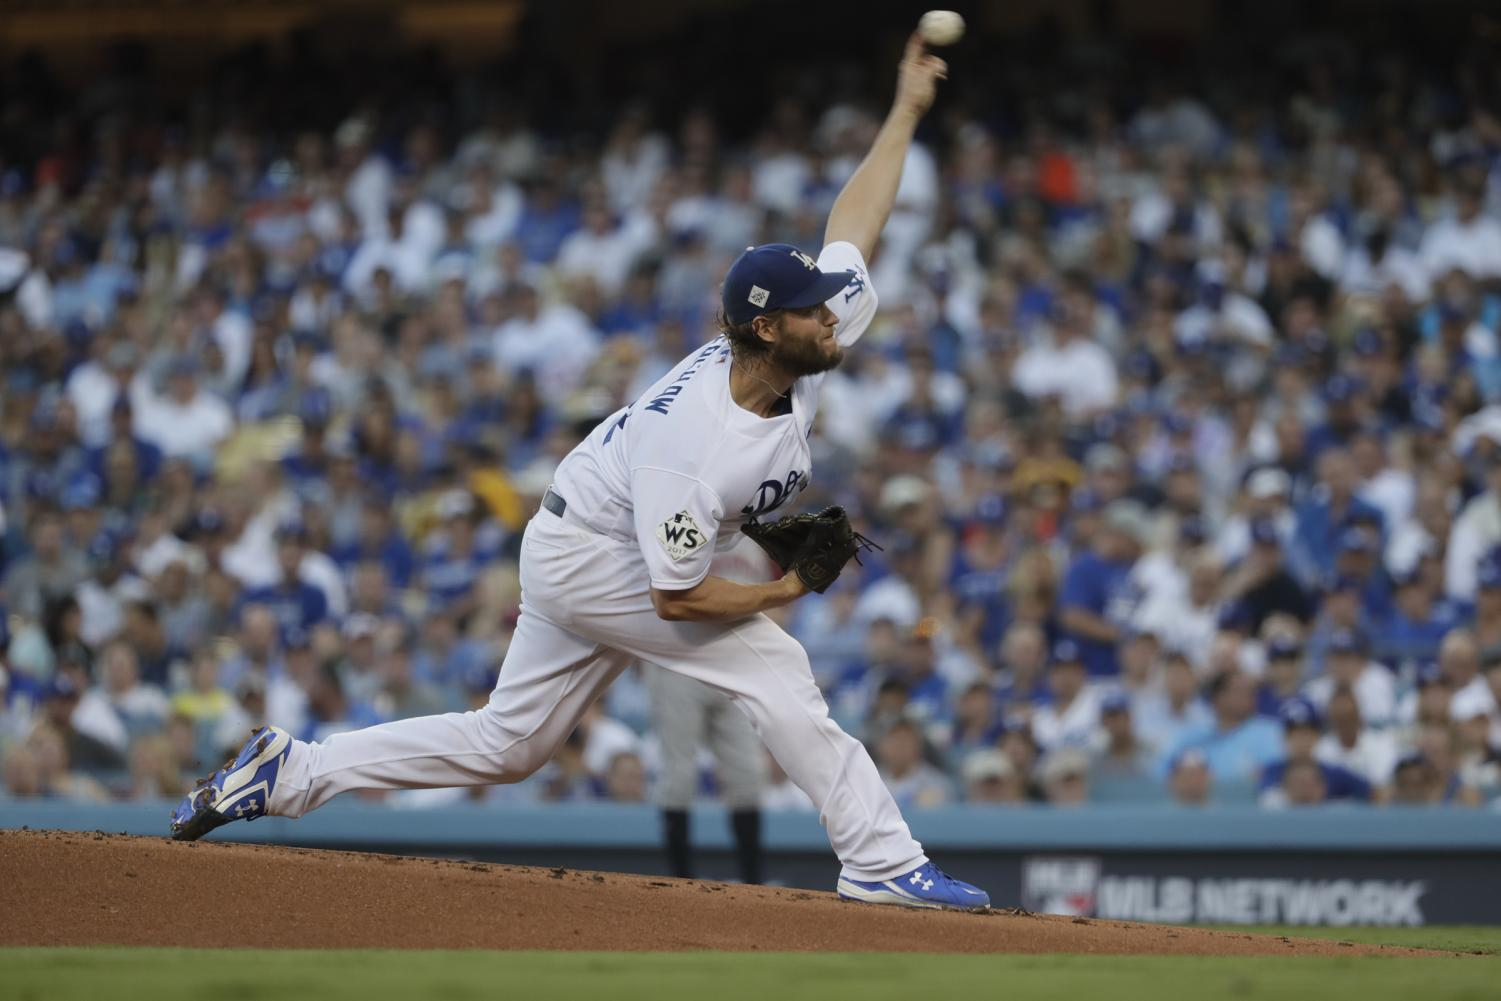 Clayton Kershaw pitches to the Houston Astros during game 1 of the World Series.